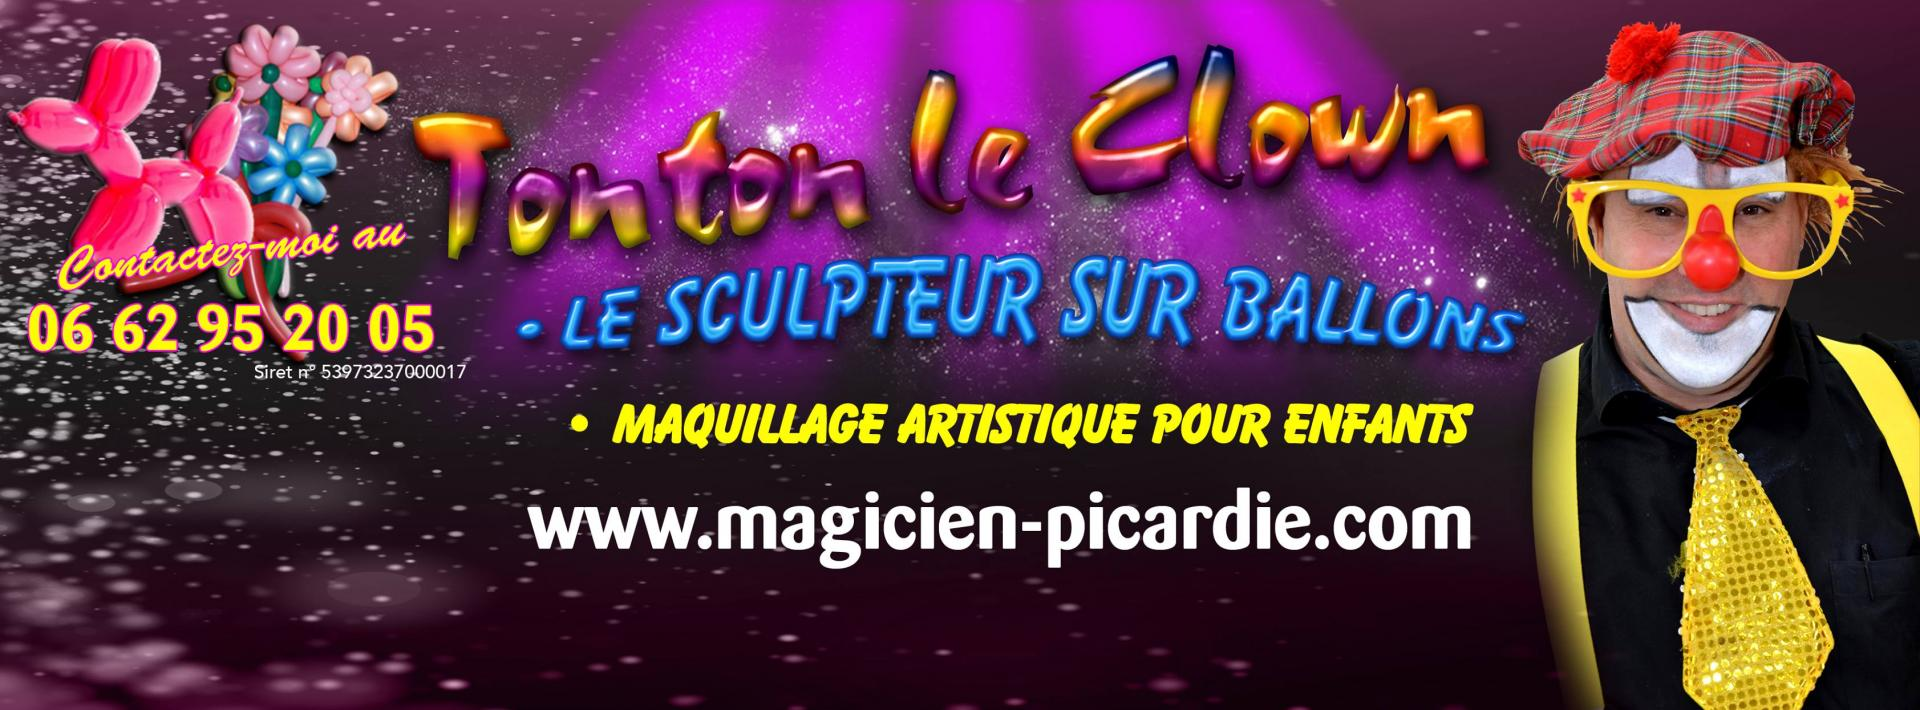 Tonton le clown sculpteur ballons en clown Hauts-de-France